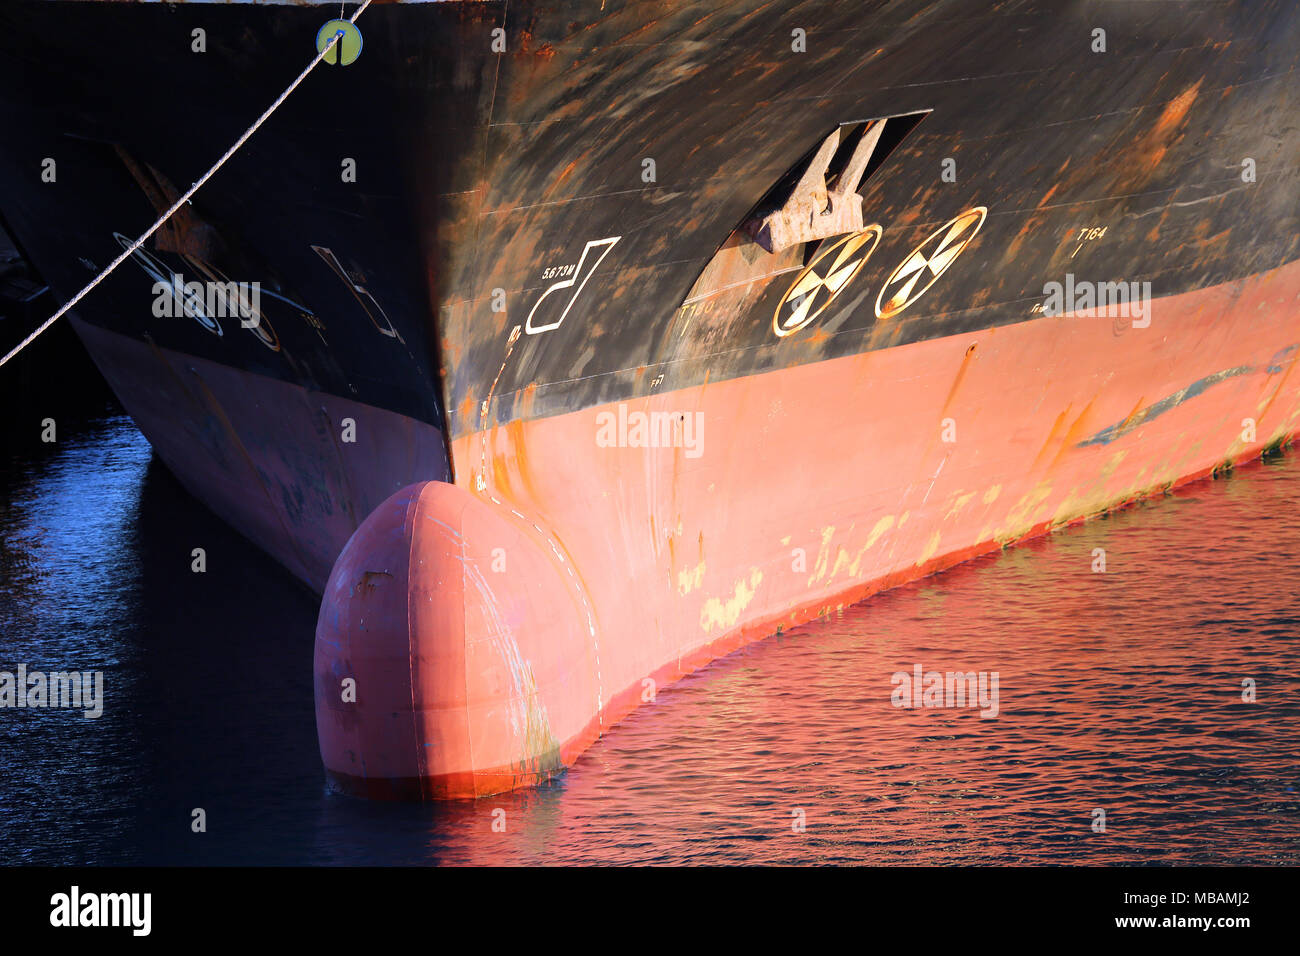 bulbous bow detail of cargo ship showing mooring line, water line, anchor, and red water reflections - Stock Image